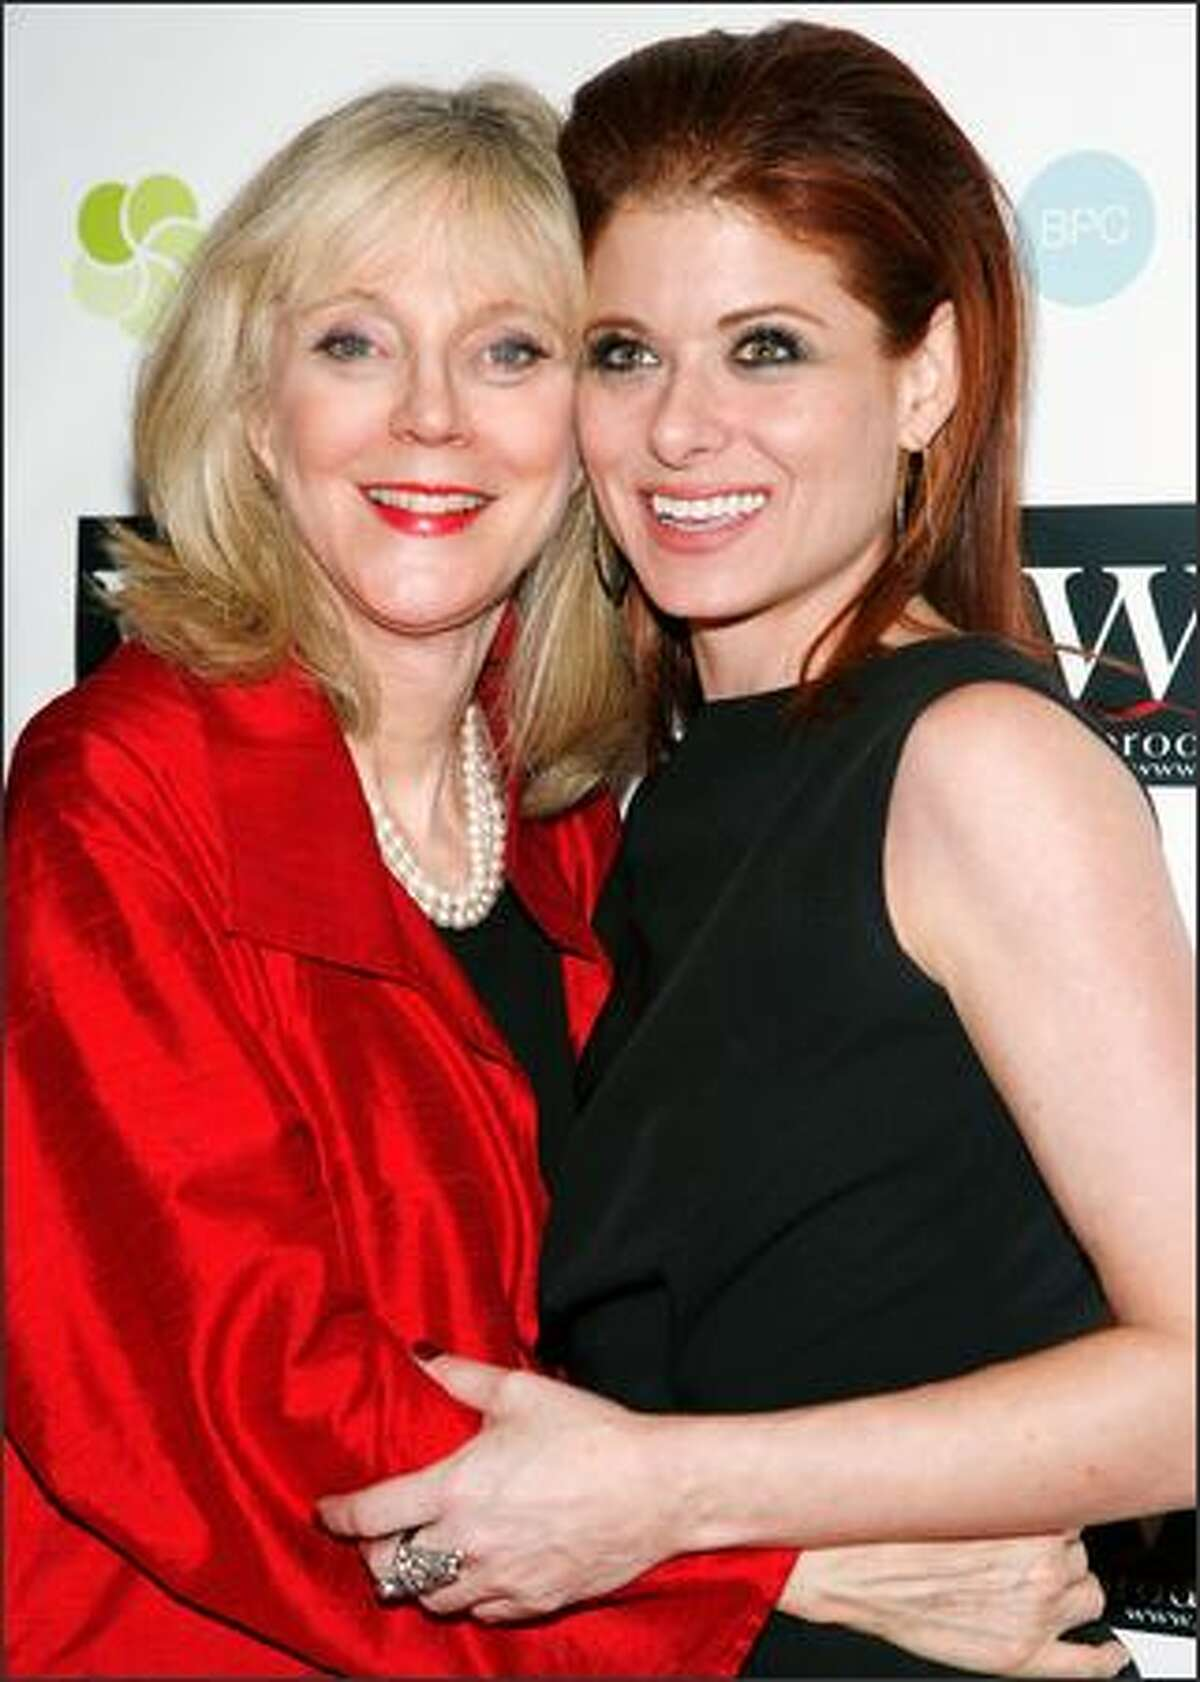 Actresses Blythe Danner (L) and Debra Messing (R) attend the LOVE benefit to support WET's 10th season at the Angel Orensanz Foundation in New York City.